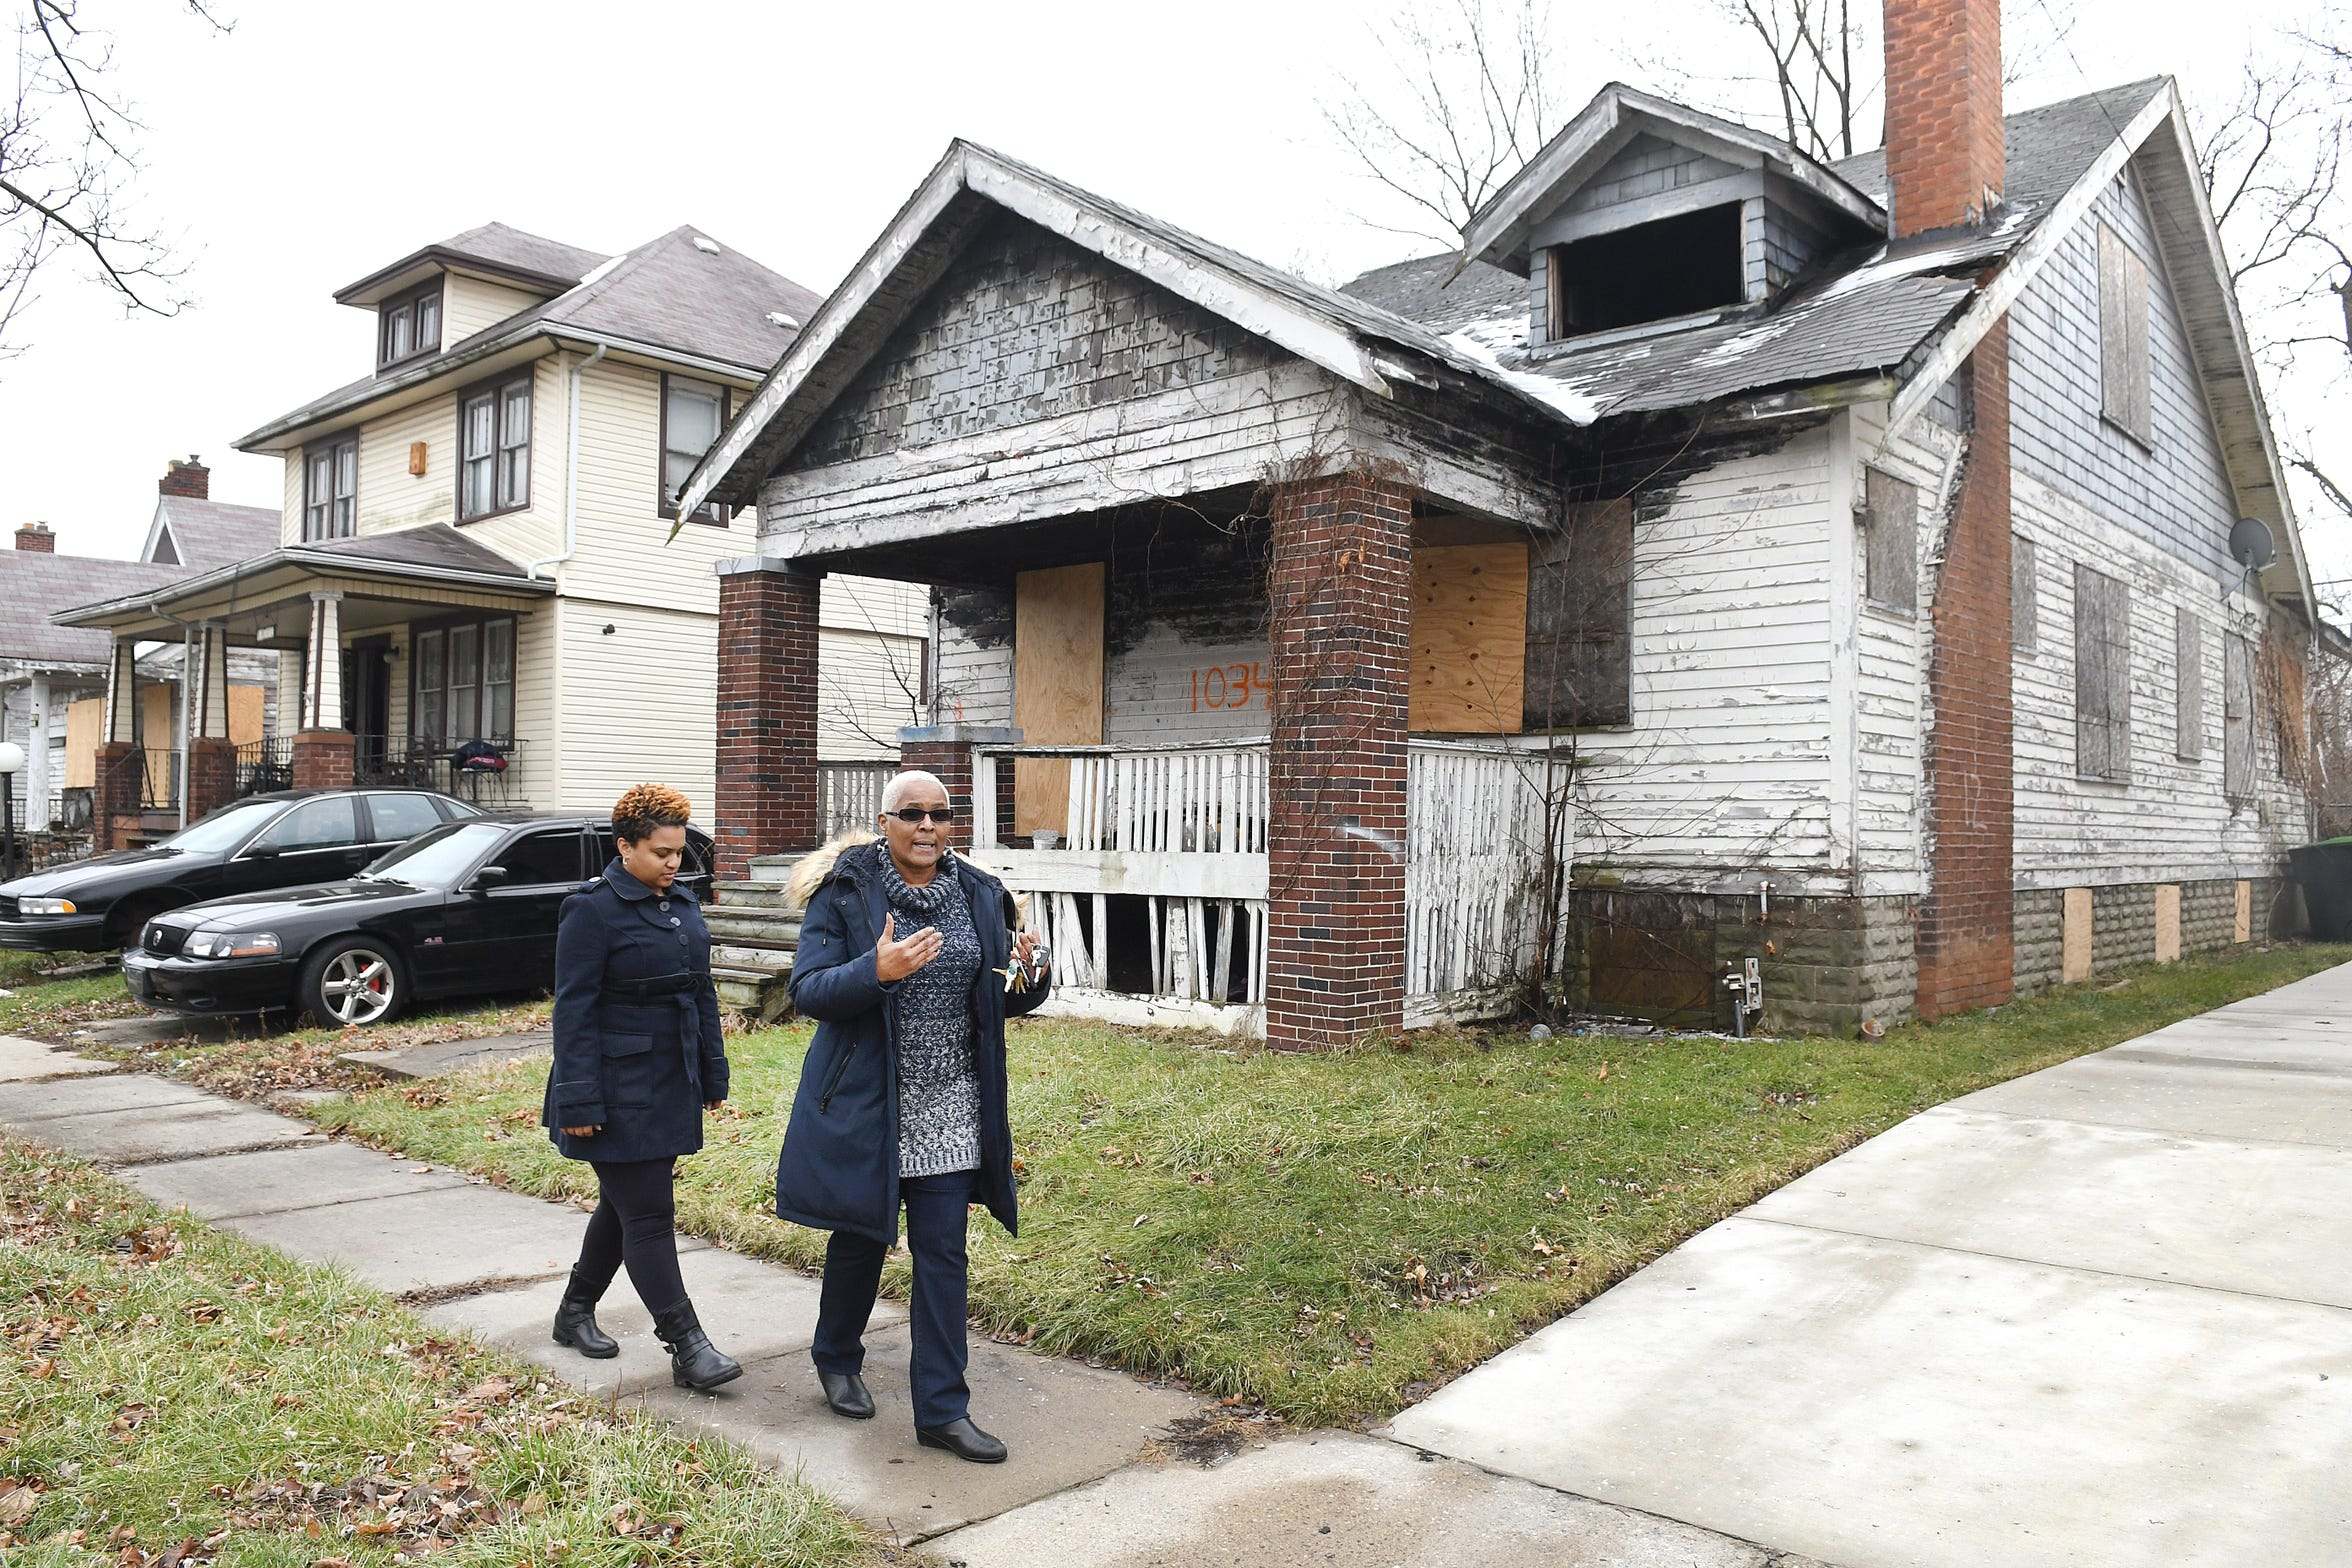 Kellie Smith and her mother Jackie Smith of Detroit walk past a long-vacant house in their neighborhood. Jackie has been trying to get the house demolished